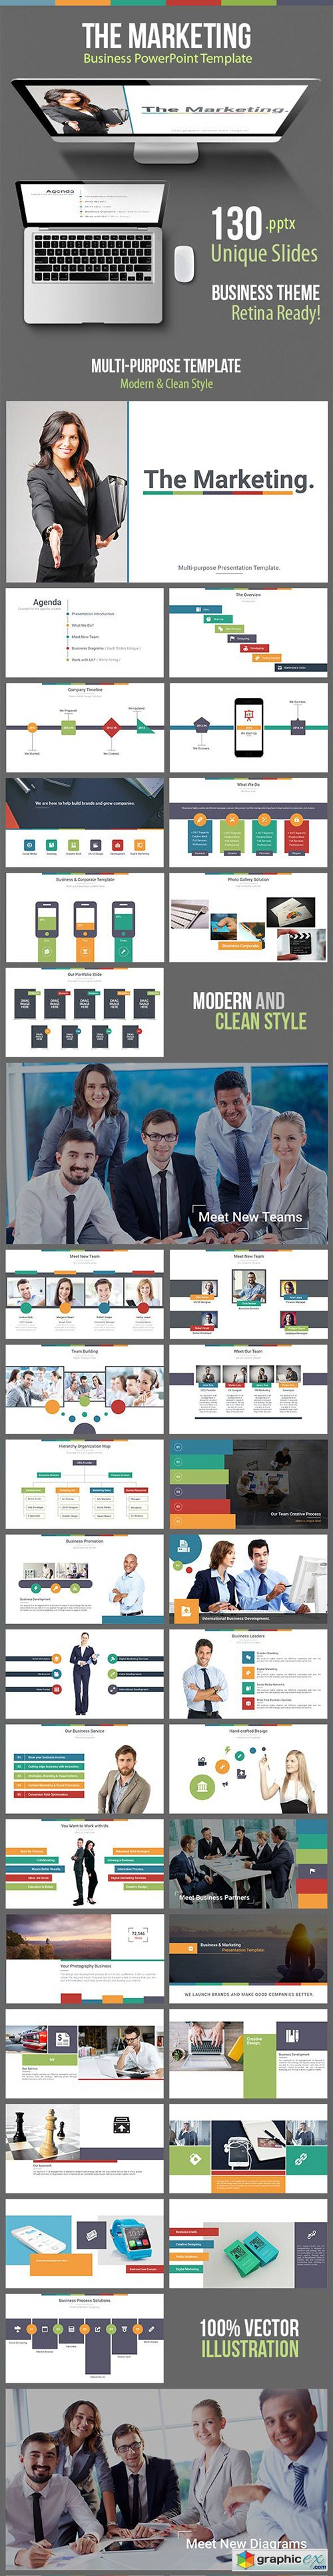 The Marketing - Business Powerpoint Template » Free Download Vector ...